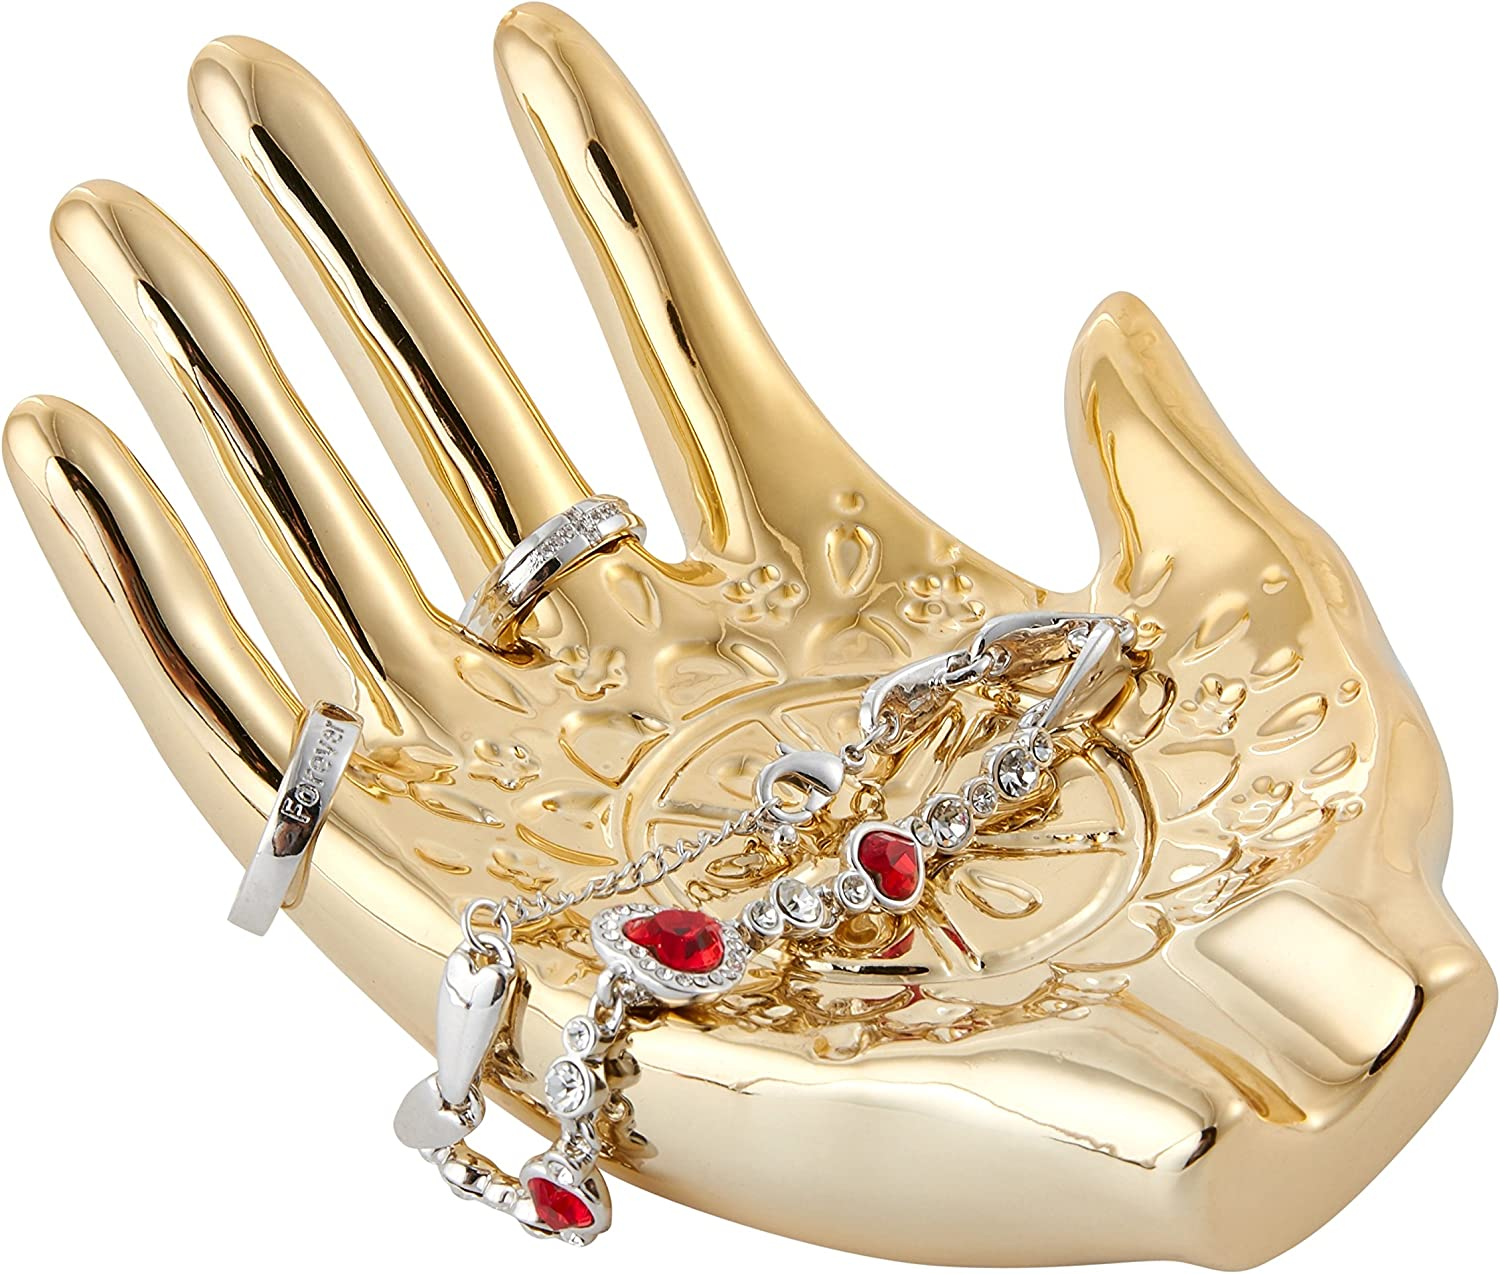 Size 148 x 110 x 60mm//5.83 x 4.33 x 2.36in Jojuno Gold Plated Ceramic Embossed Hamsa Hand for Ring and Jewelry Holder